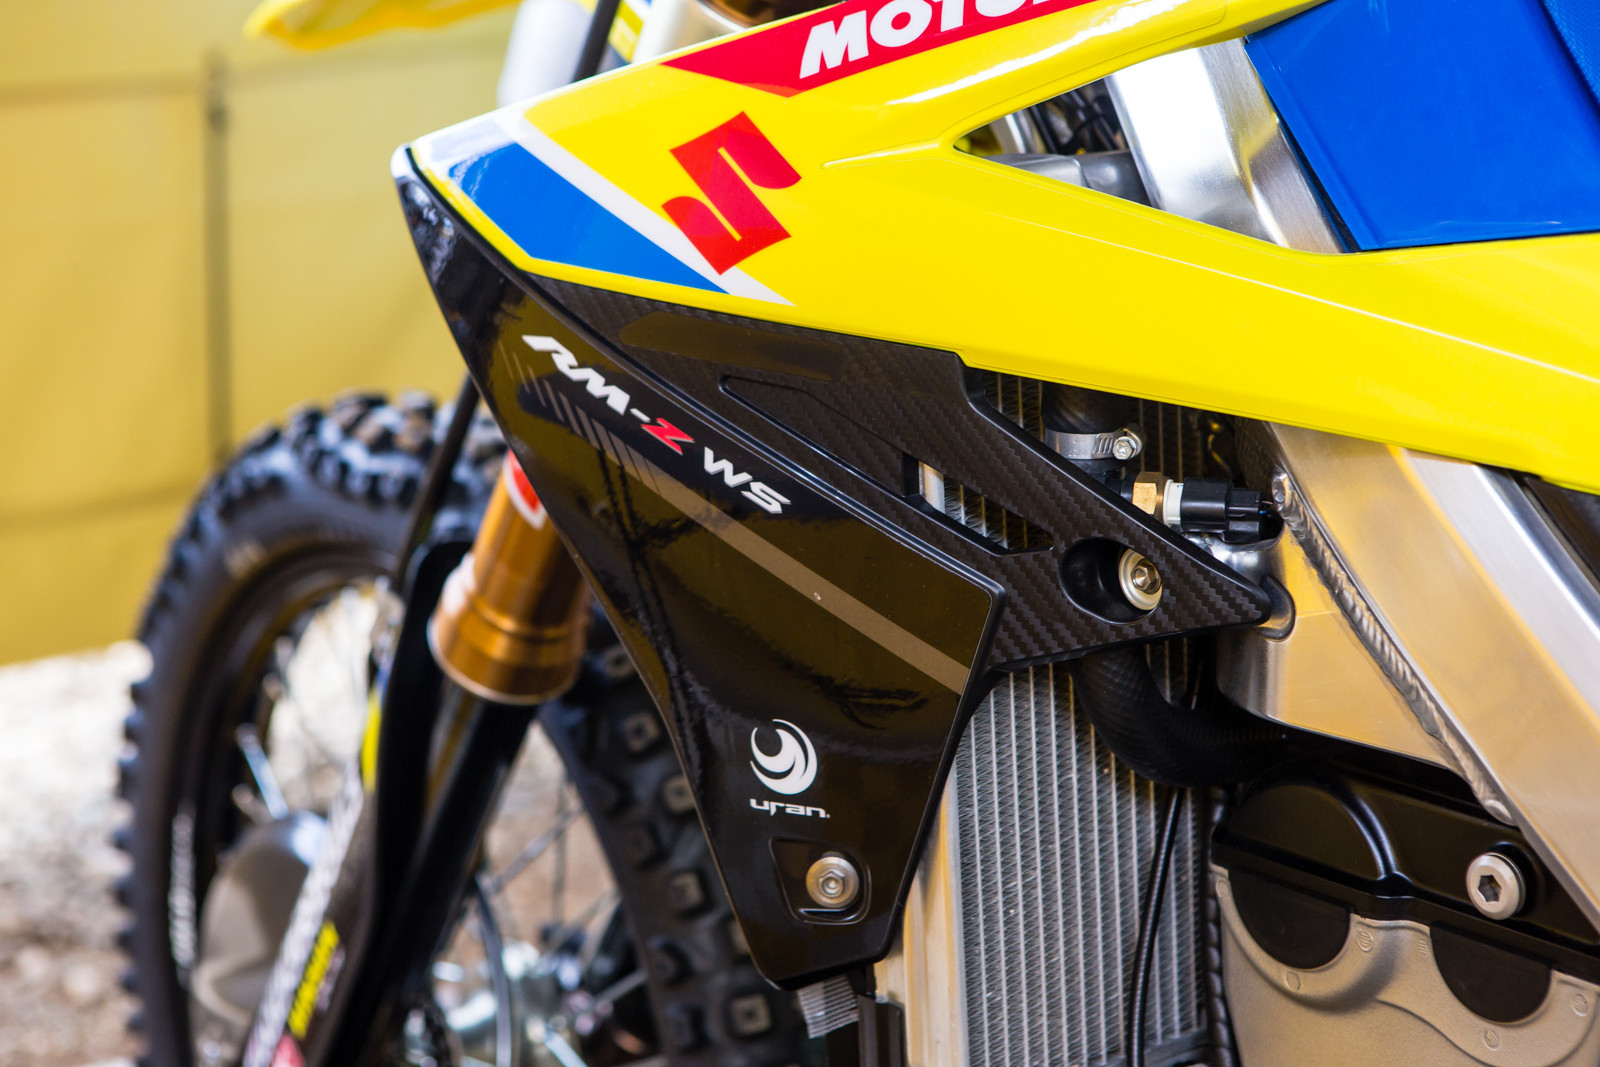 2018 suzuki rm. beautiful suzuki 2018 suzuki rmz450ws  carbon fiber shroud vital mx pit bits 2017 sugo  alljapan national motocross  on suzuki rm